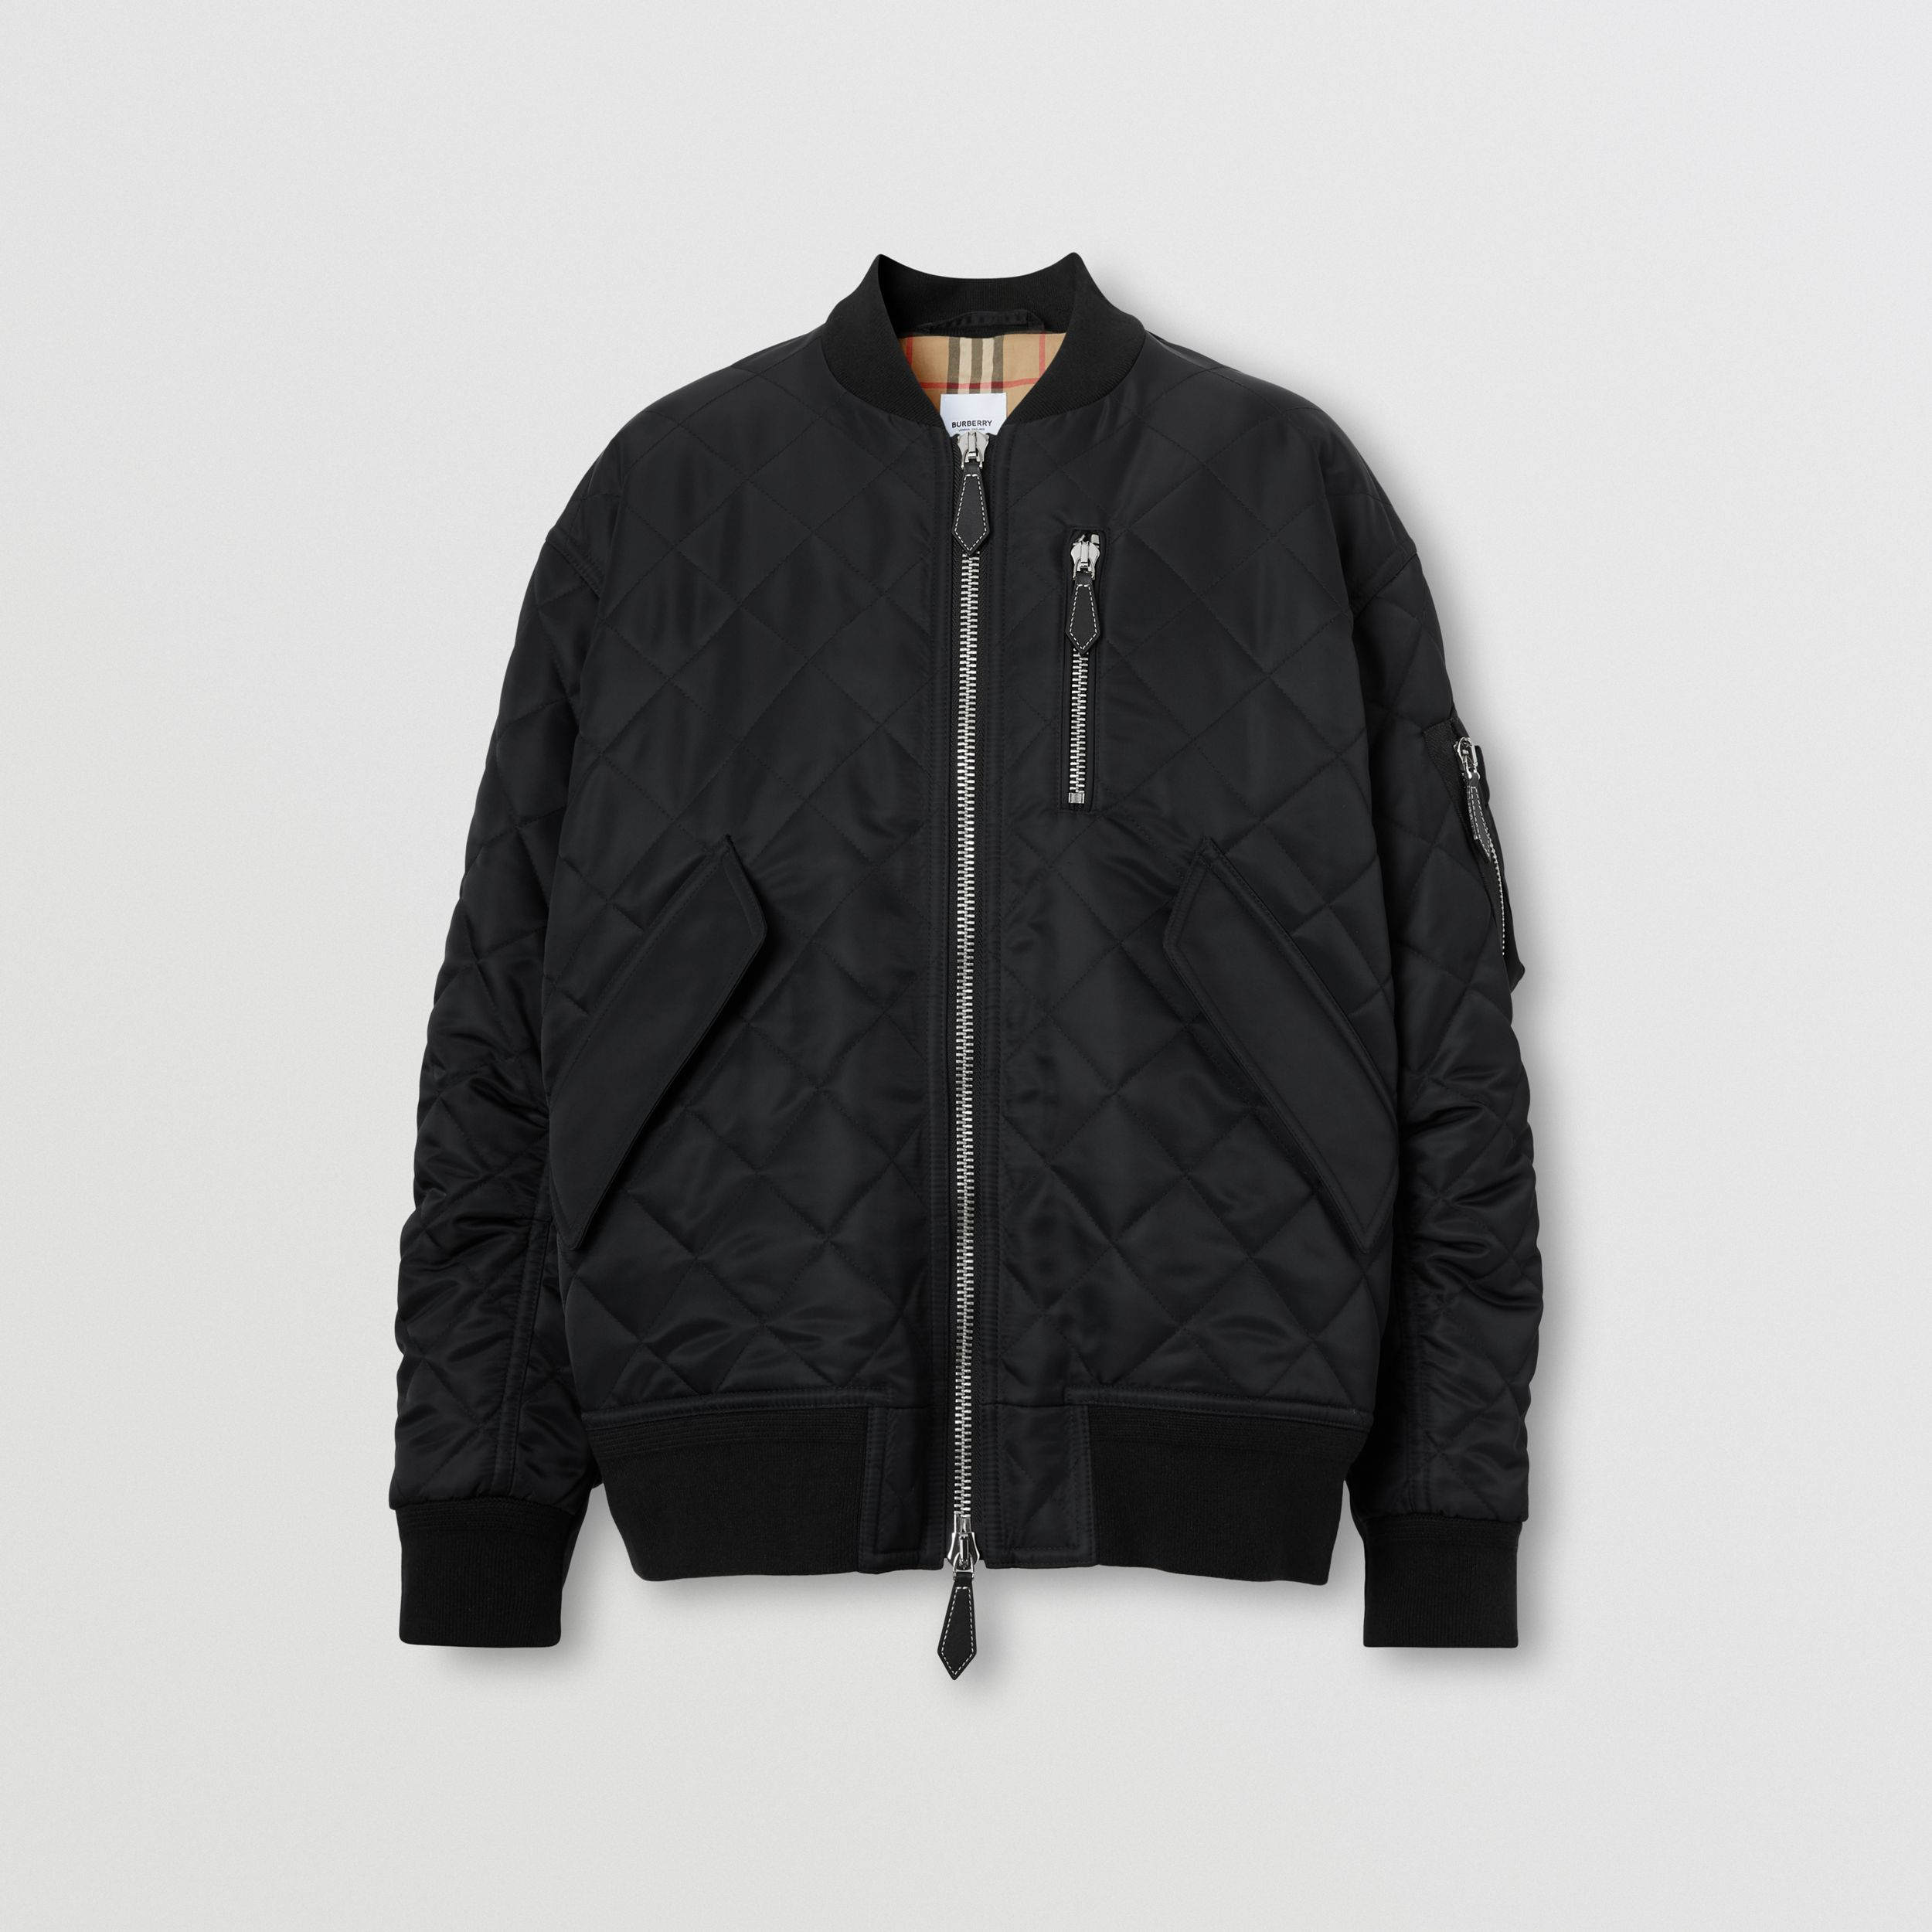 Diamond Quilted Nylon and Cotton Bomber Jacket in Black/black - Women | Burberry - 4